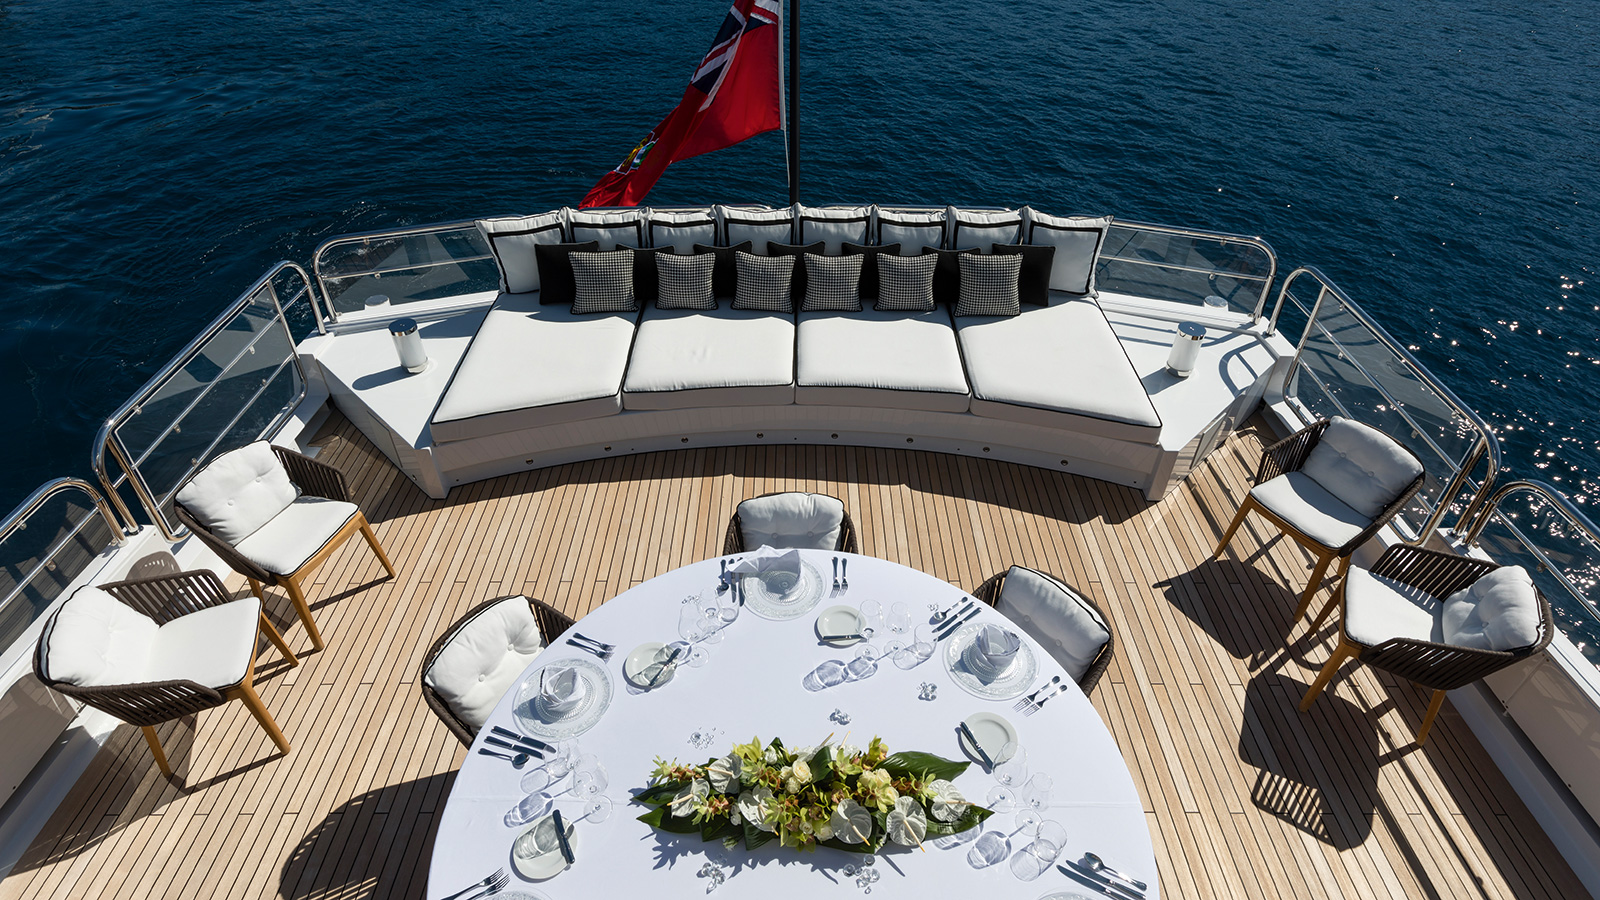 the-al-fresco-dining-area-of-the-refitted-feadship-motor-yacht-dojo-credit-thierry-ameller